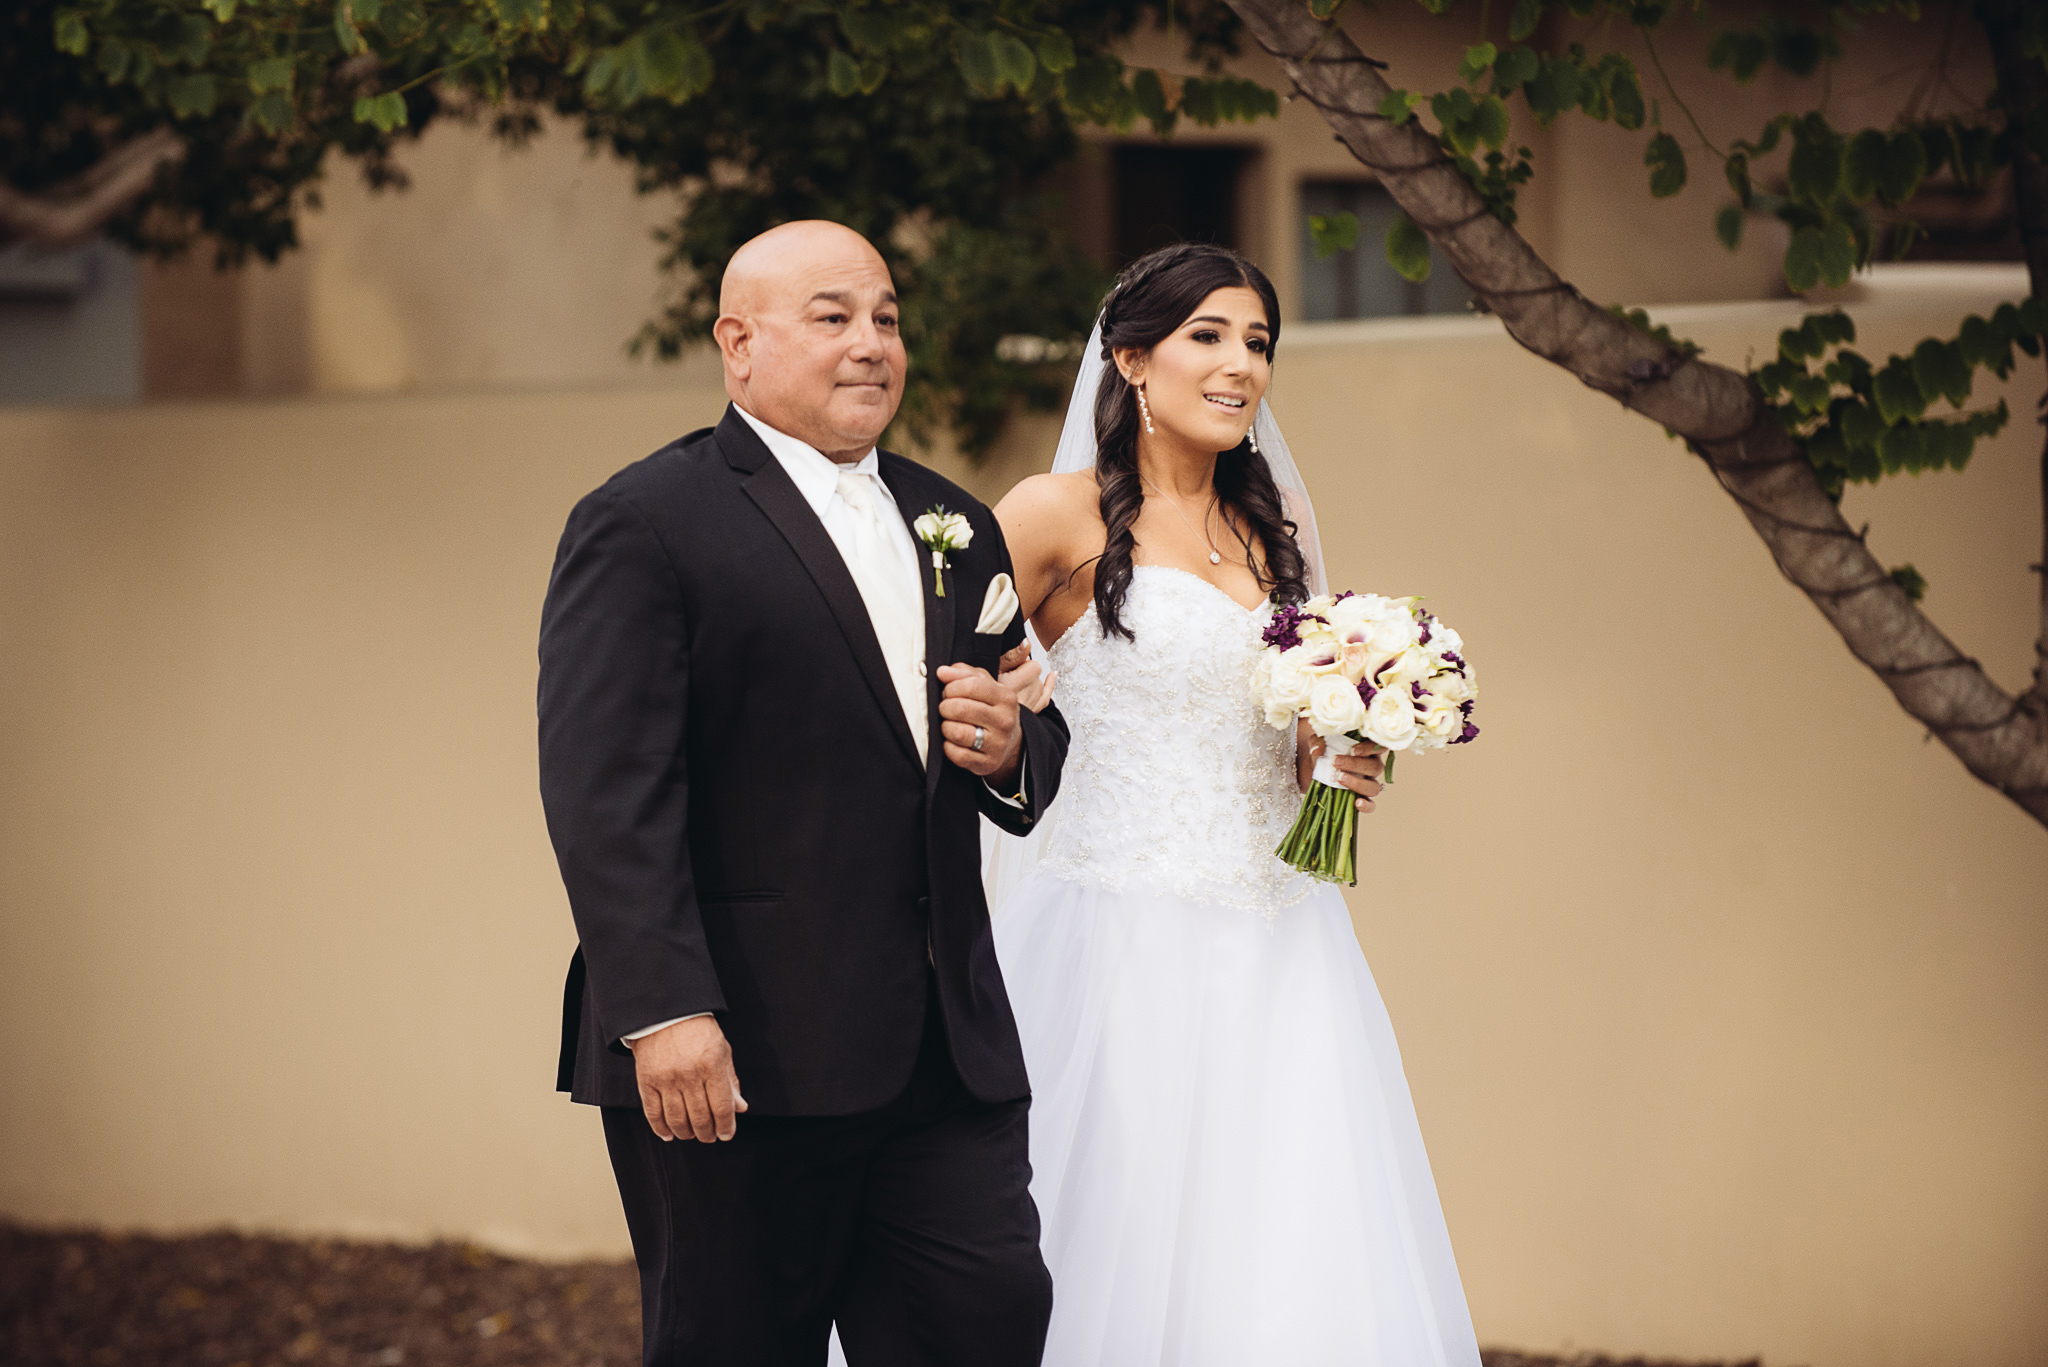 wedding-photography-az-andrew-ybanez-elemental-fotos-gilbert-arizona-7.jpg